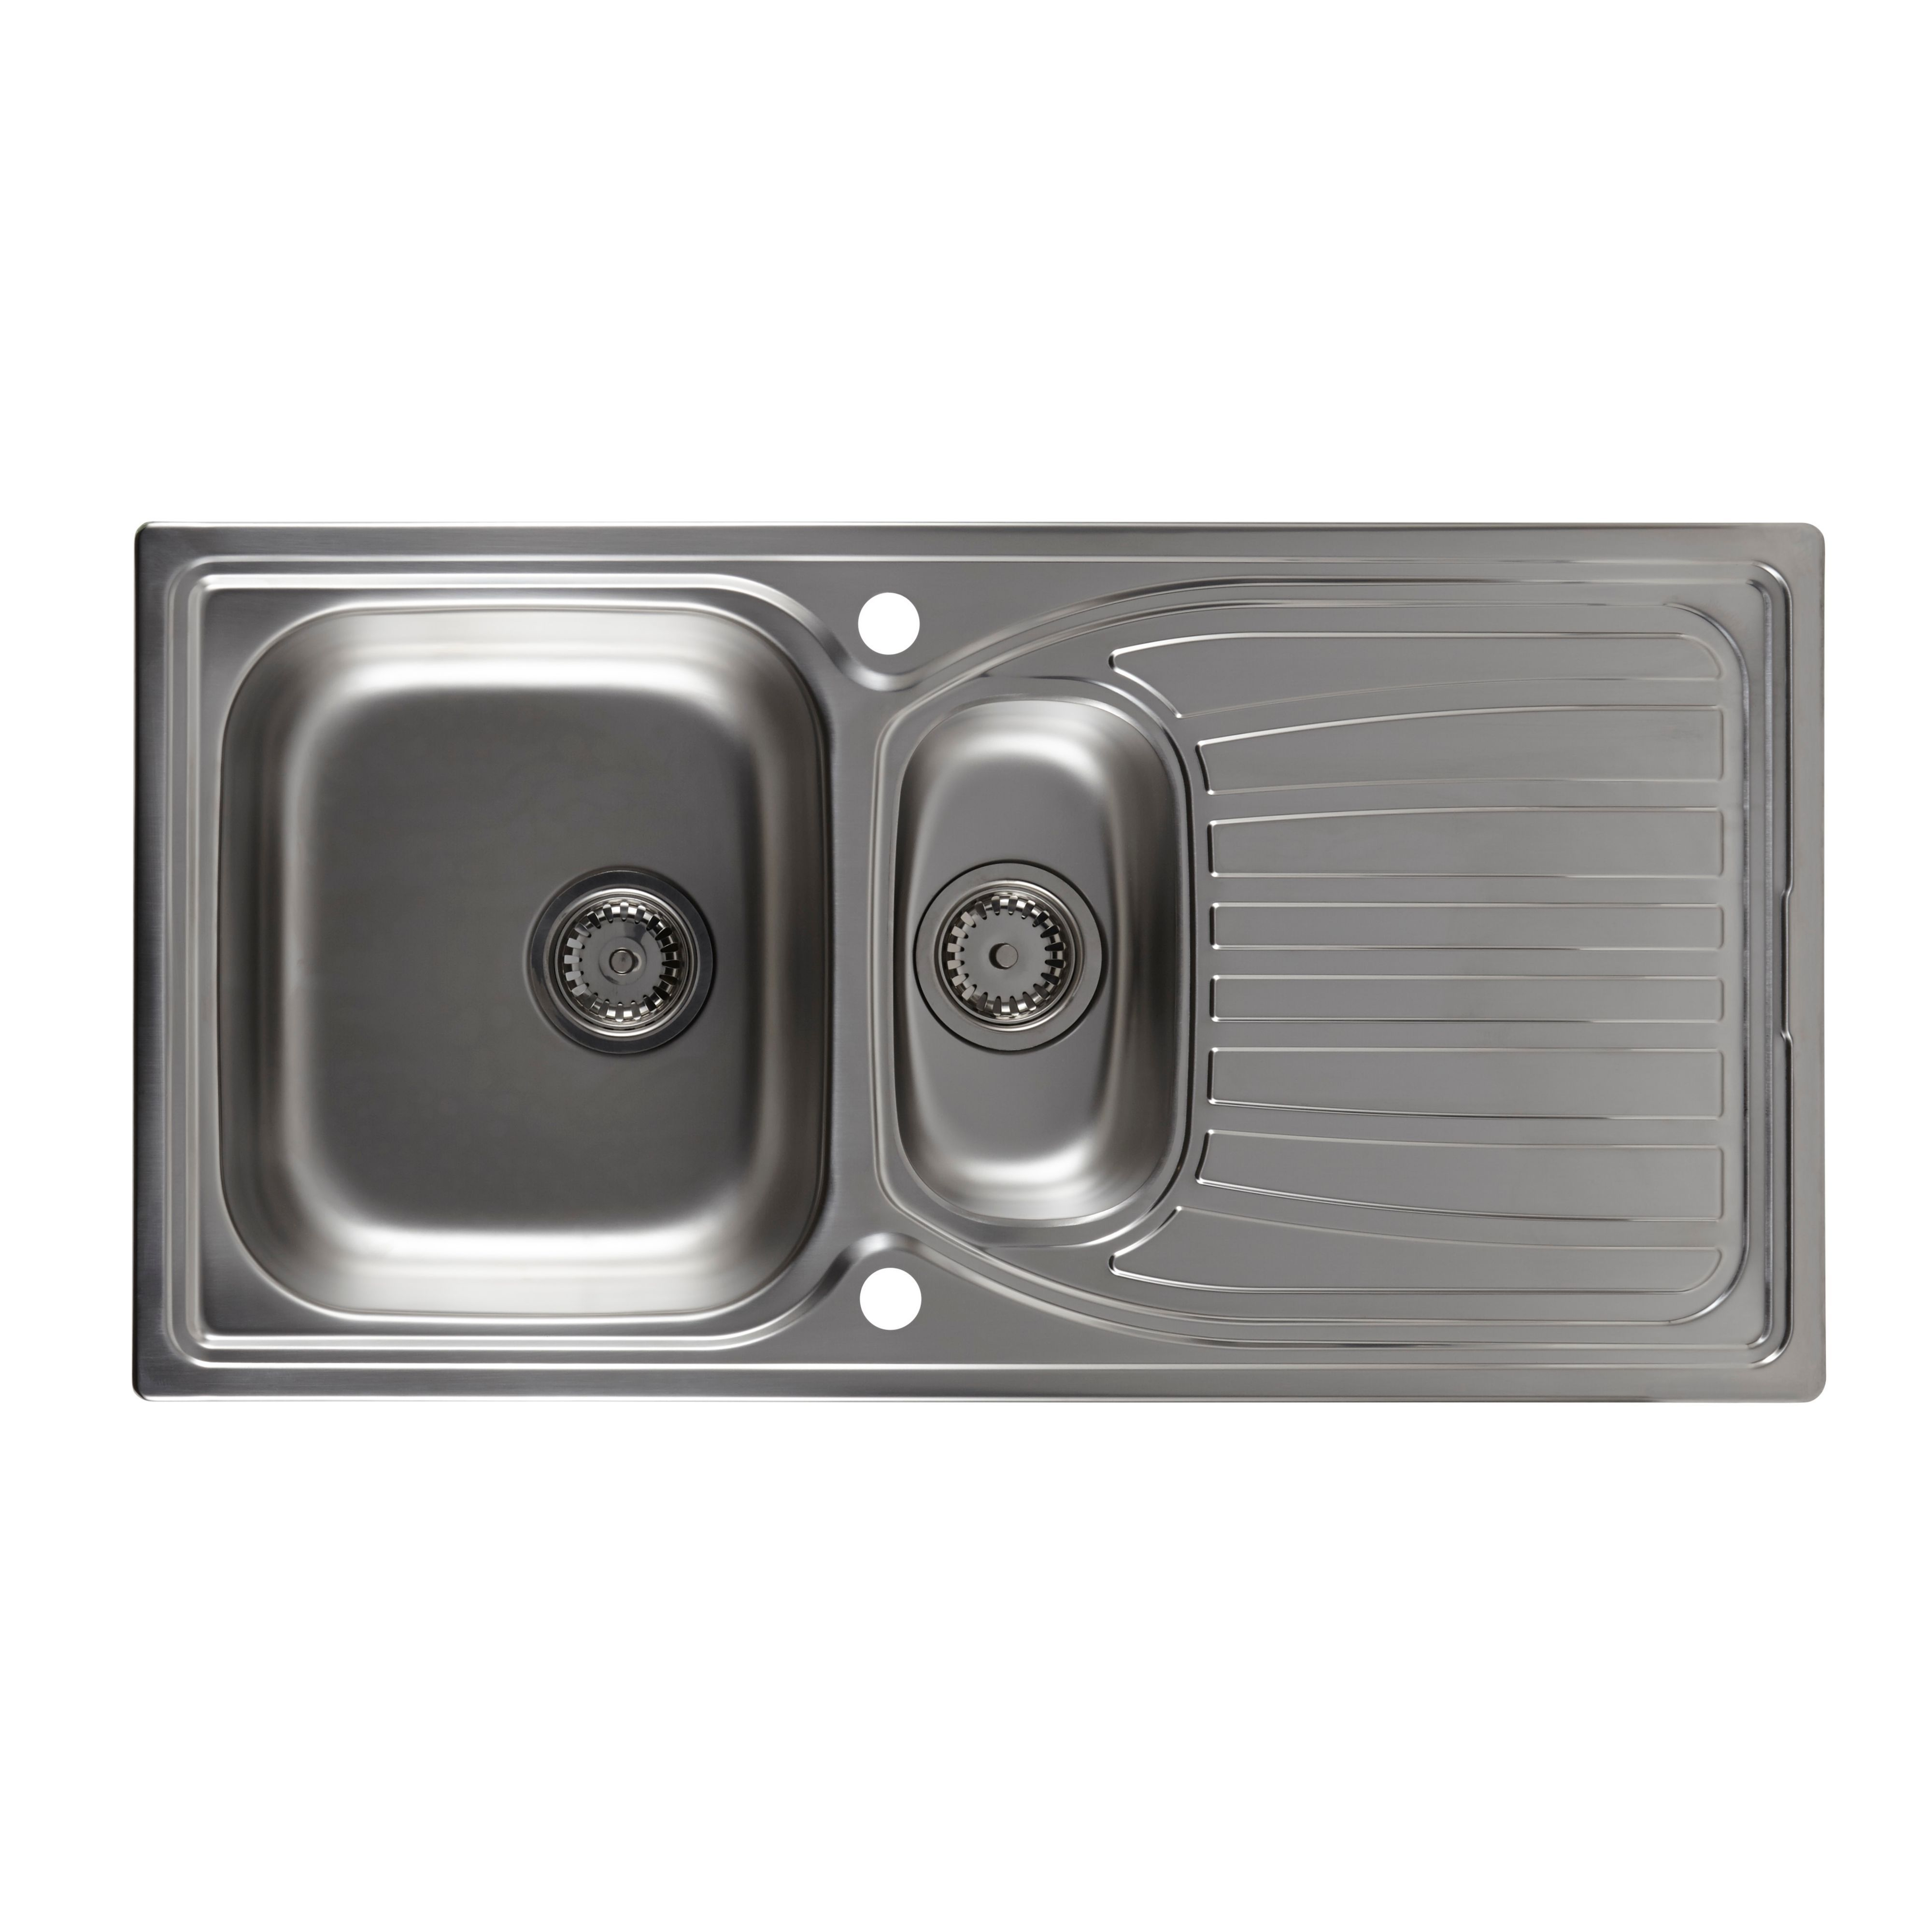 Astracast Alto 1.5 Bowl Stainless Steel Sink & Drainer | Departments ...